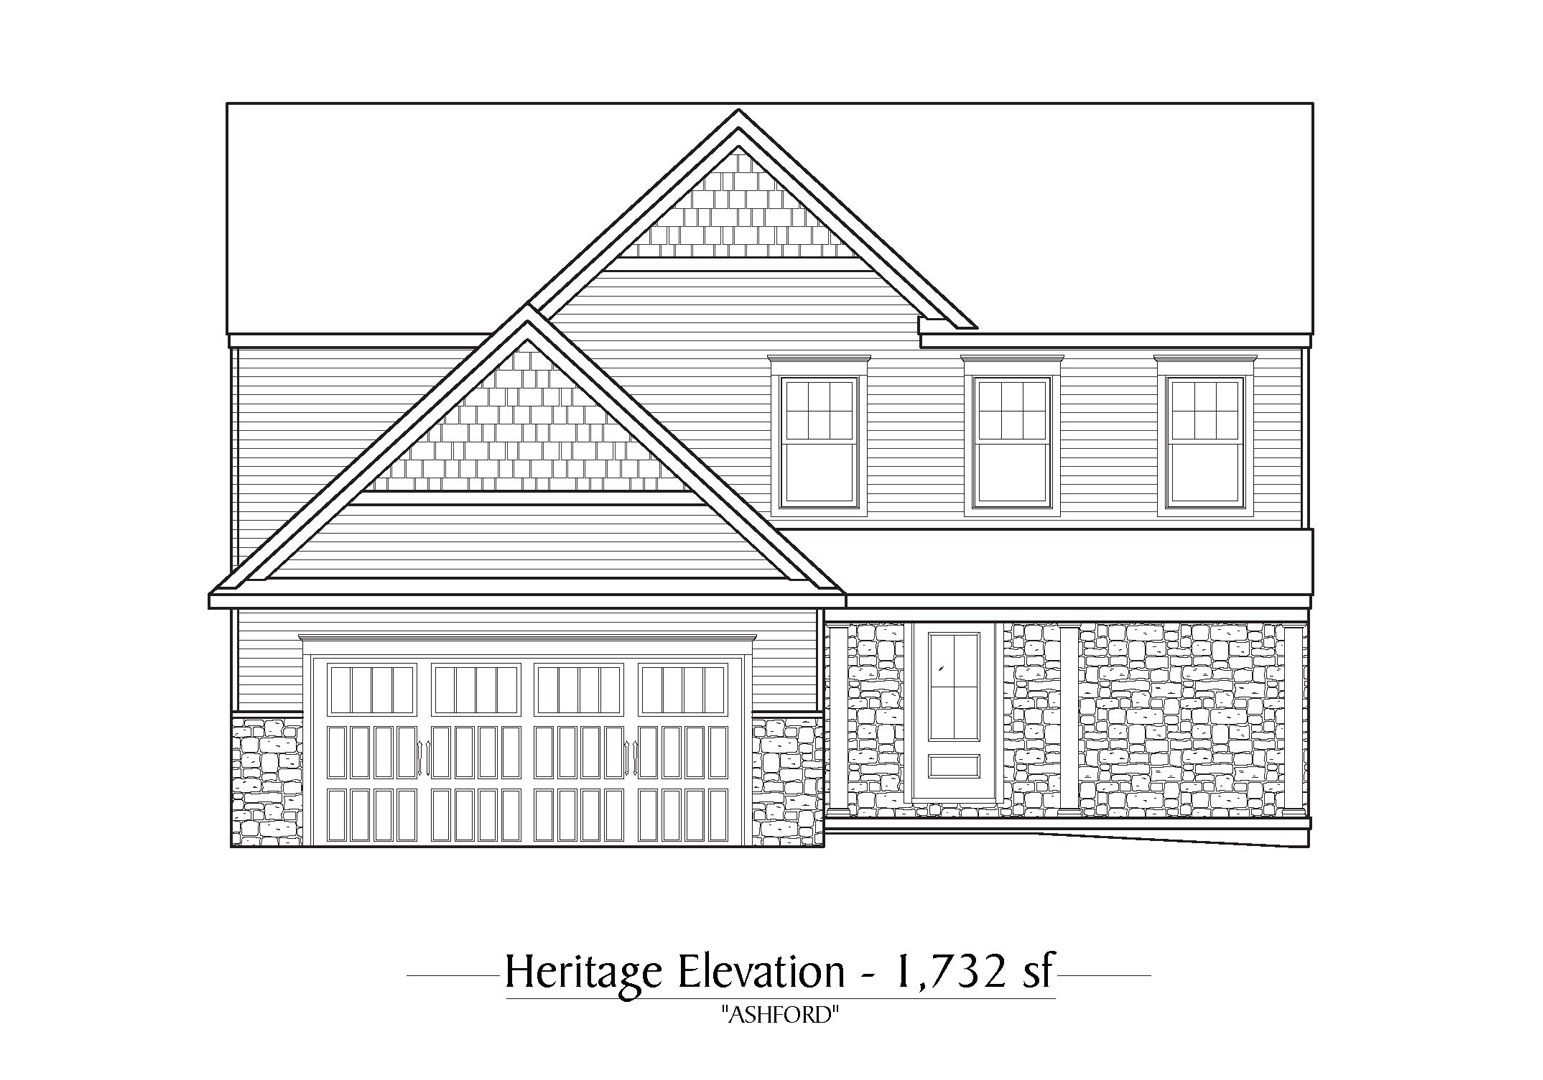 Heritage Elevation